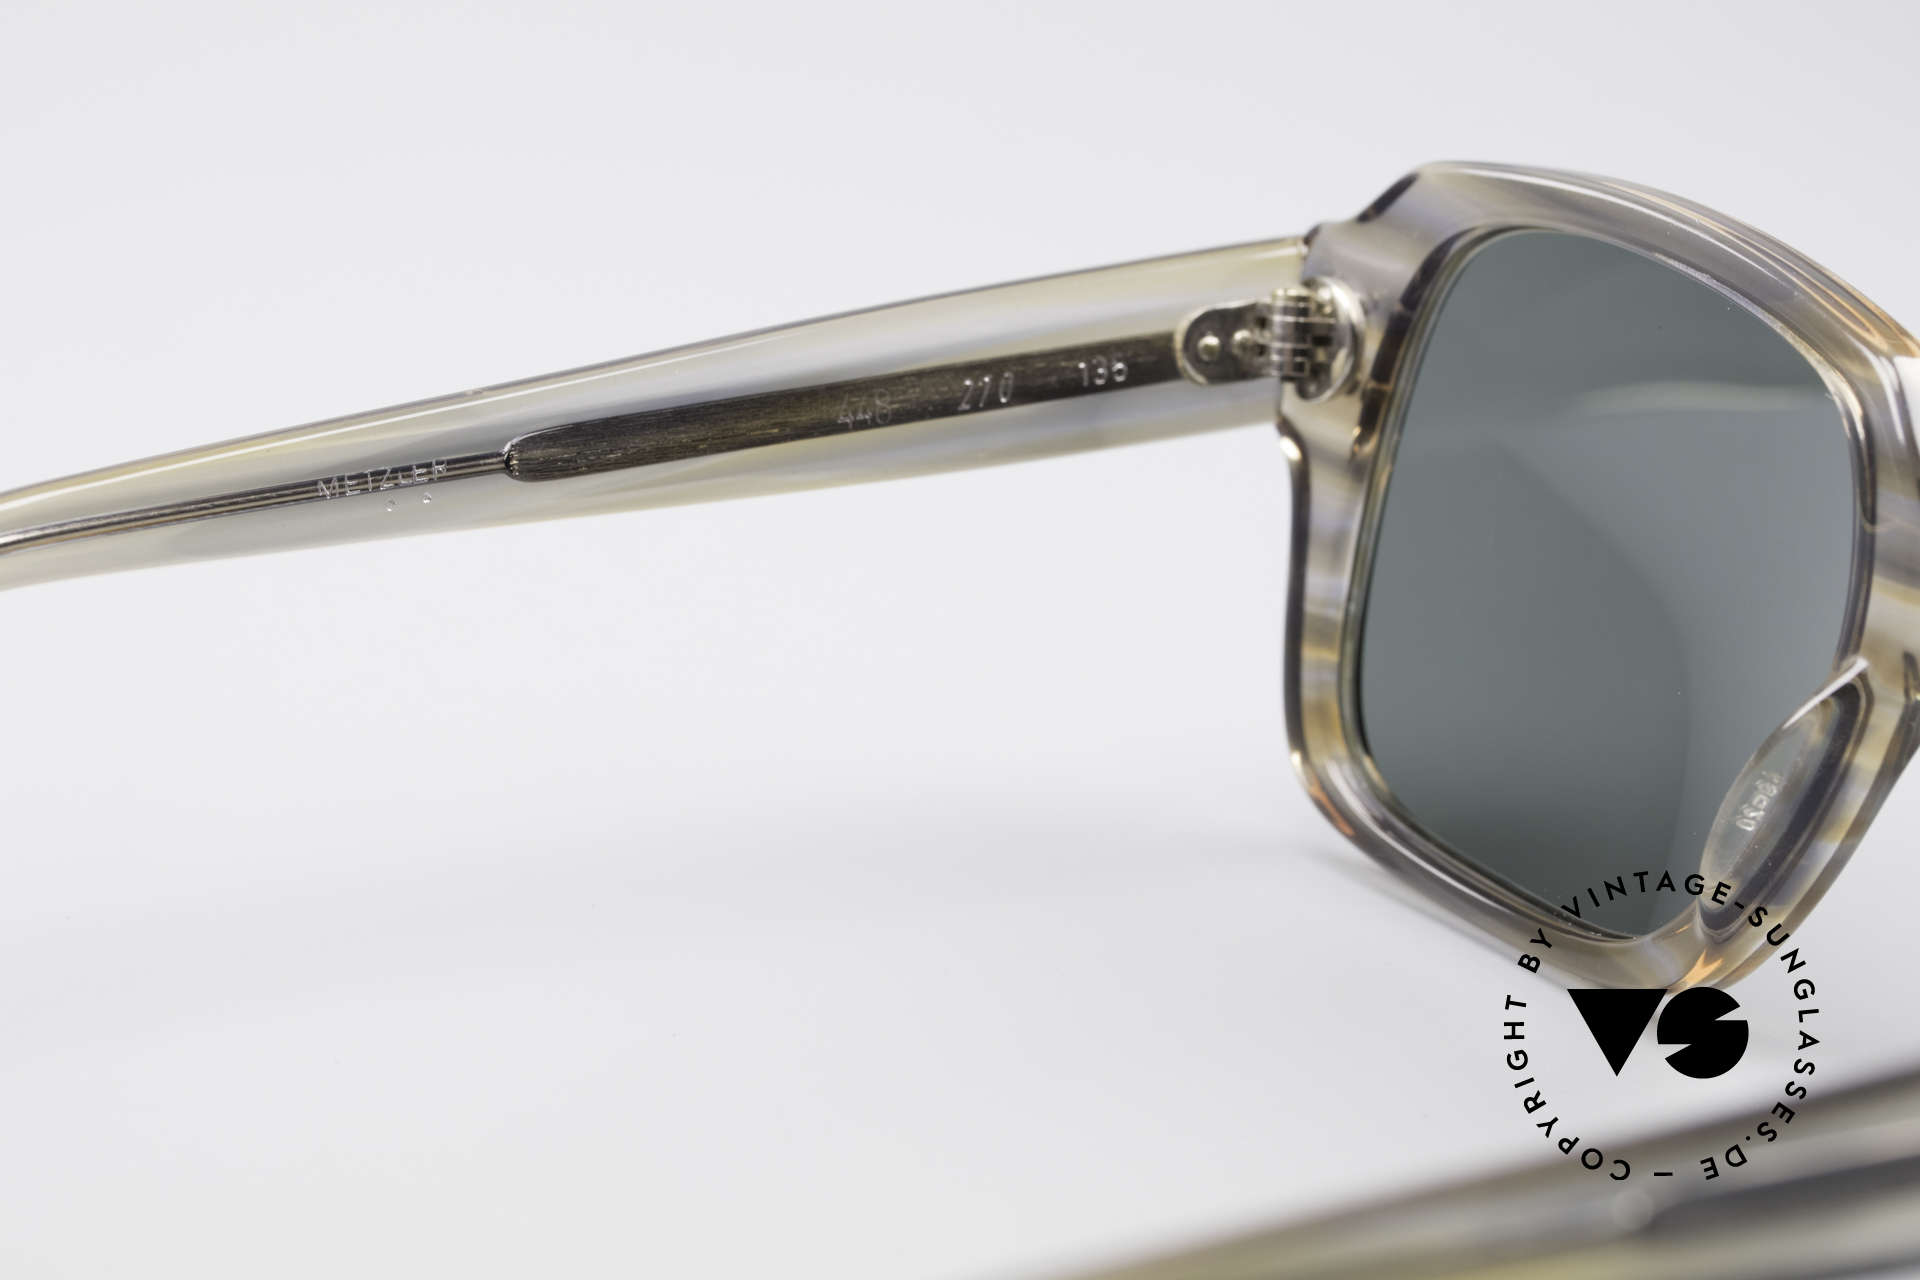 Metzler 448 Small 70's Sunglasses, the frame is made for lenses of any kind (optical / sun), Made for Men